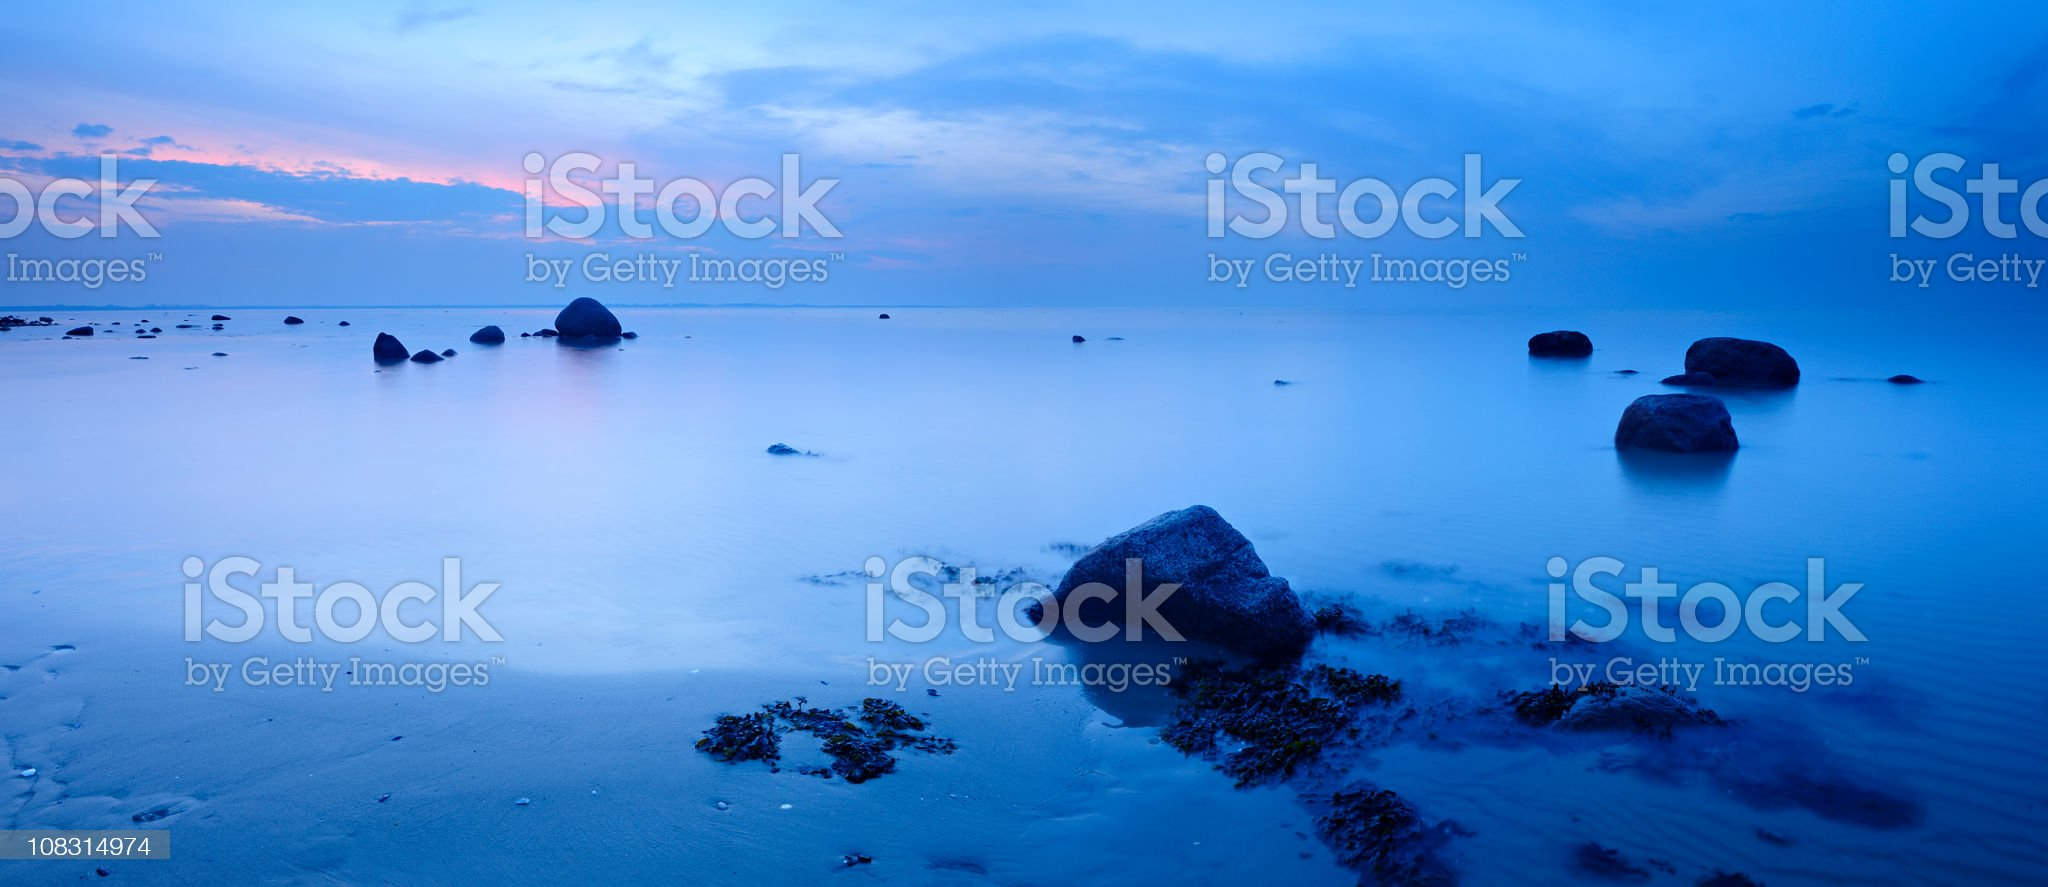 Tranquil Blue Sea with Huge Boulders at Sunset royalty-free stock photo